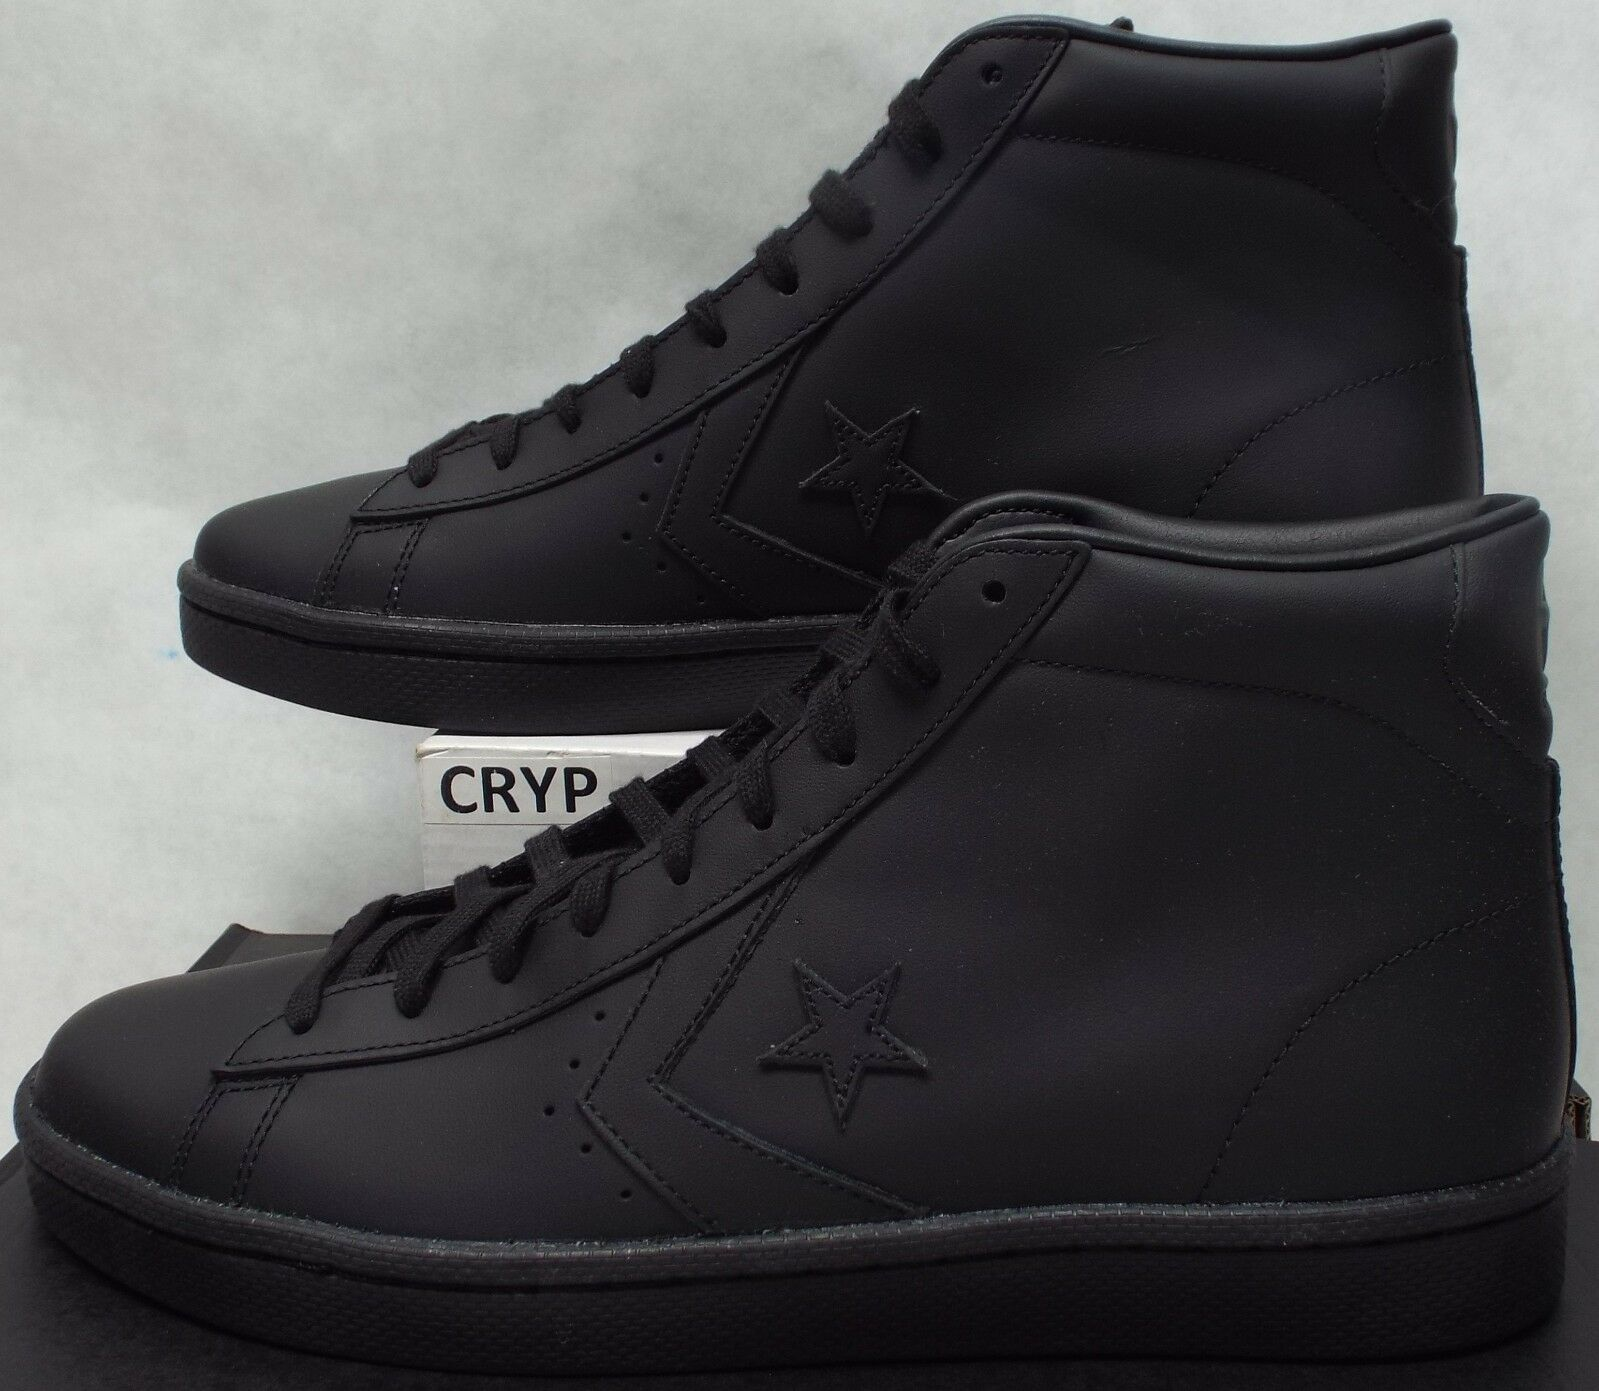 Homme 13 Converse All Star Player PL 76 Mid Triple Noir Leather 2018 155334C